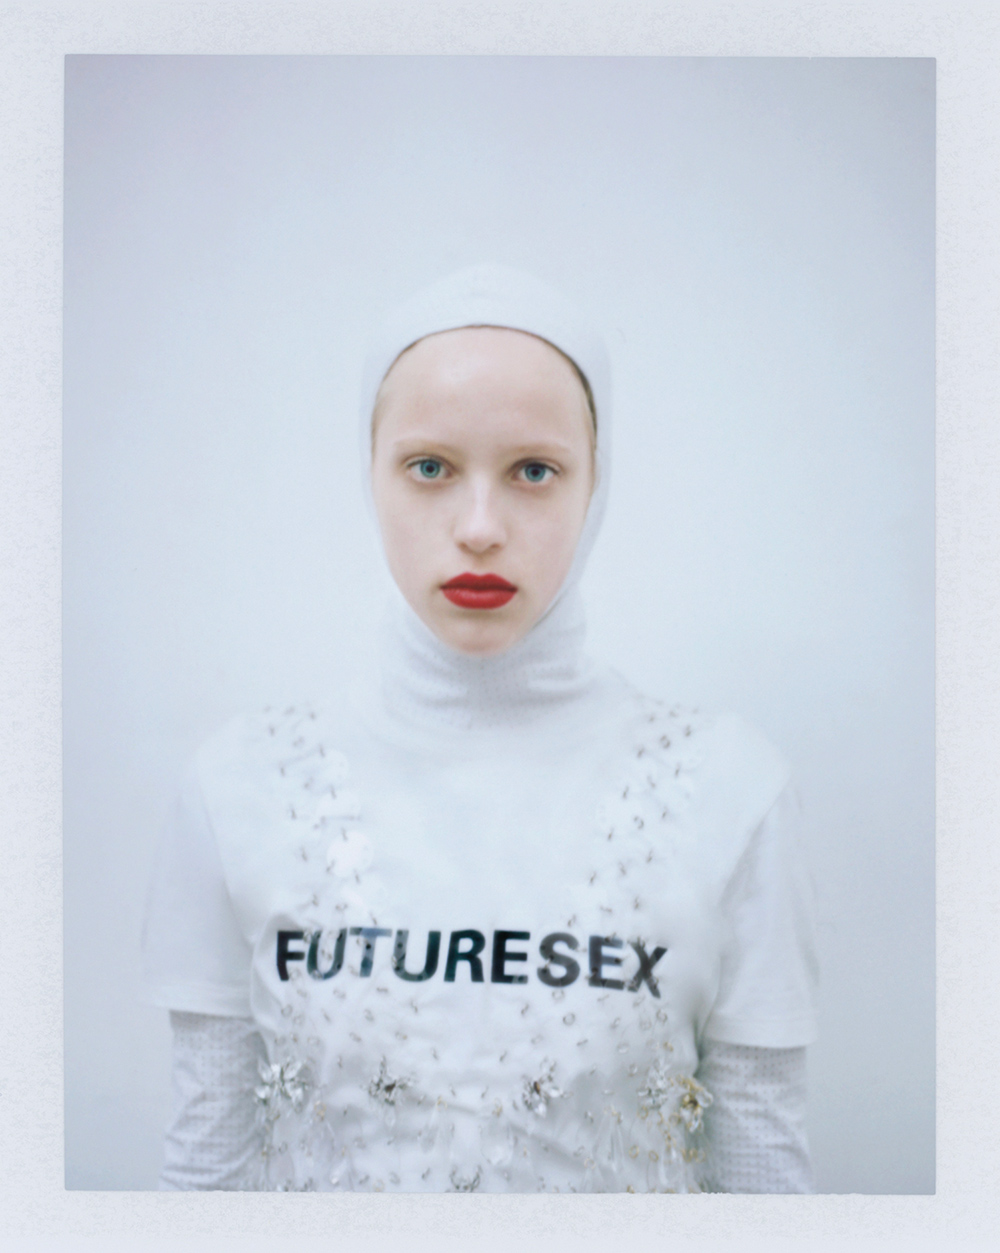 Tassel dress, hooded long sleeves top & t-shirt 'Futuresex' by Paco Rabanne.